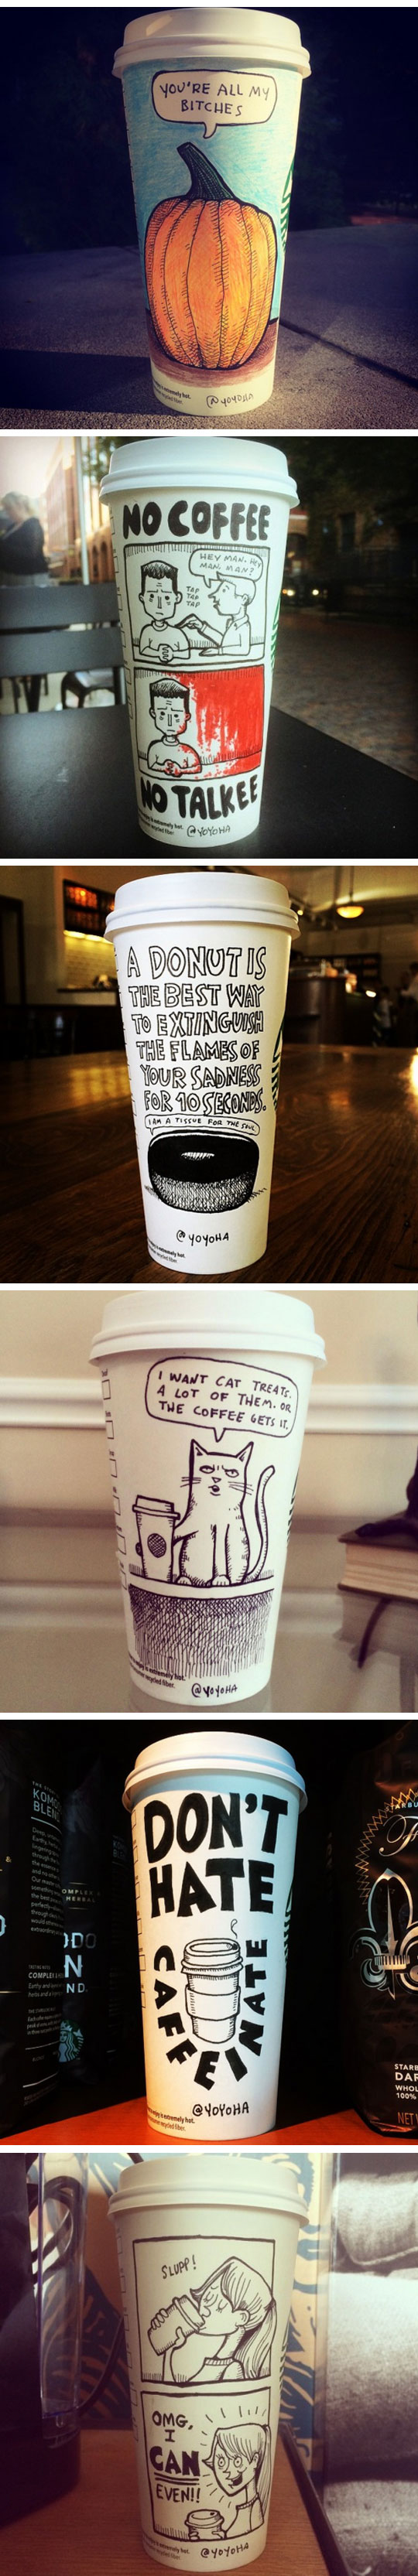 funny-coffee-cup-cartoon-Starbucks